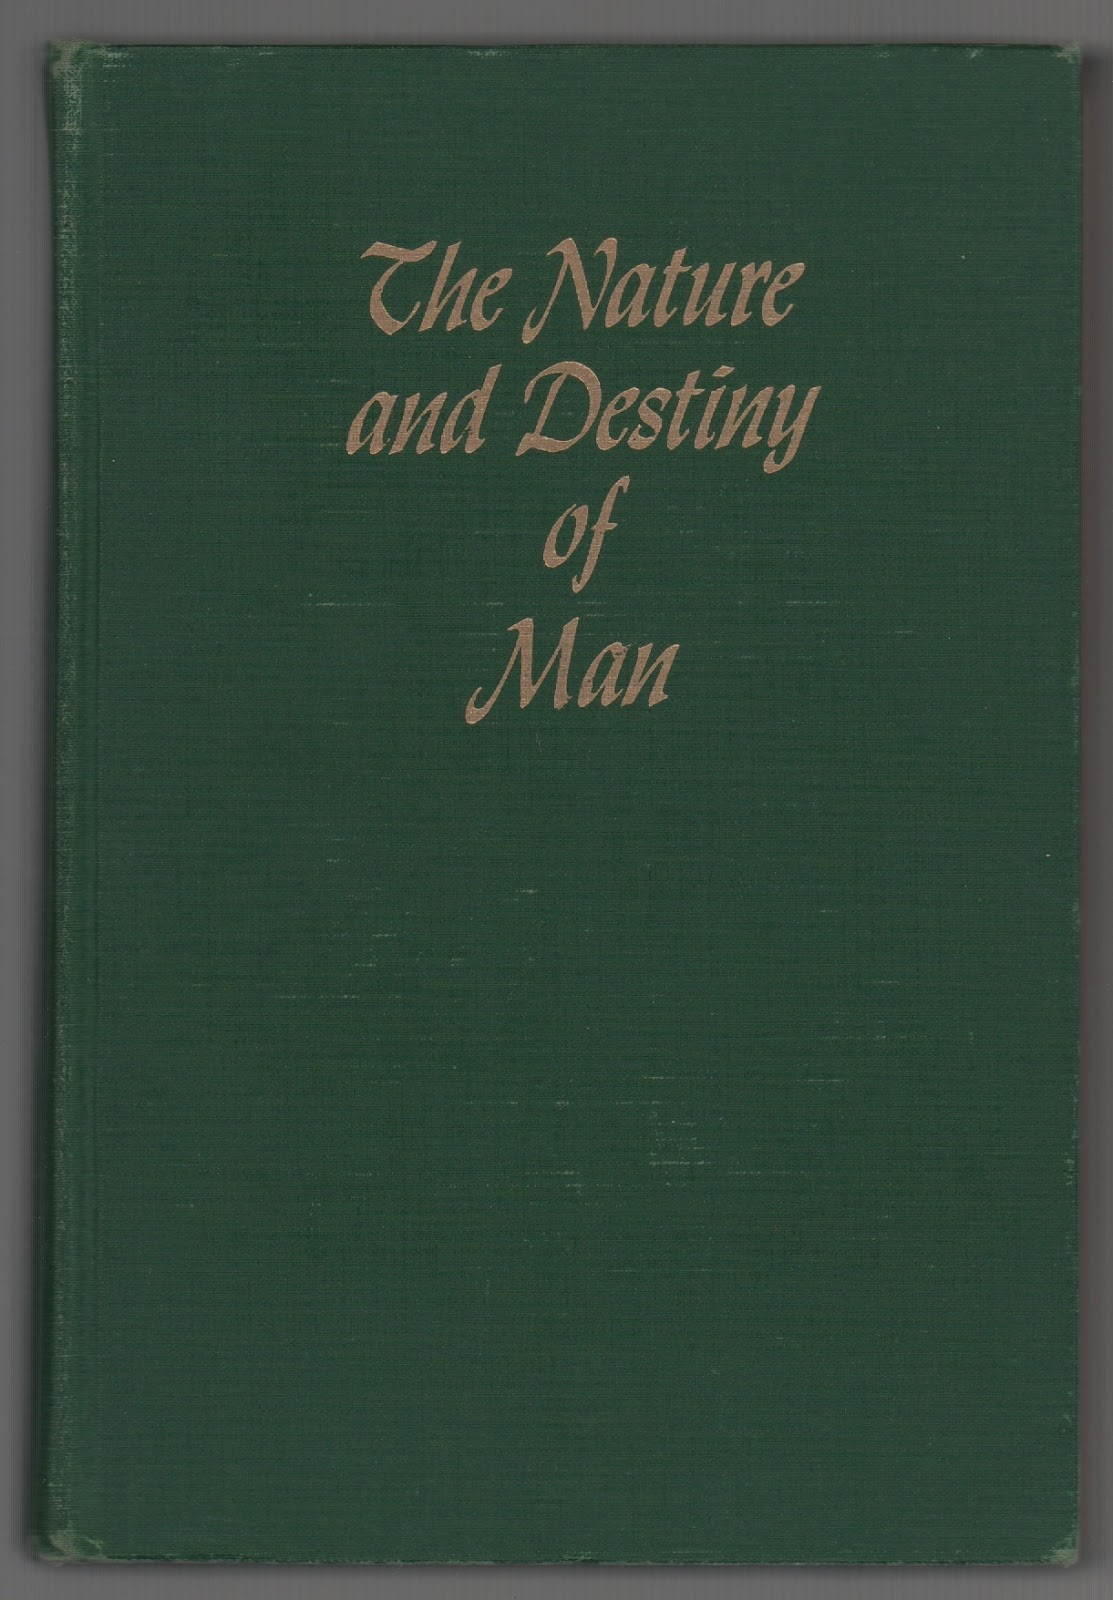 language and the destiny of man Isle of man lullaby, manx gaelic or gailck little red bird of the black turf  ground, of the black turf ground, of the black turf ground, little red bird of the  black.